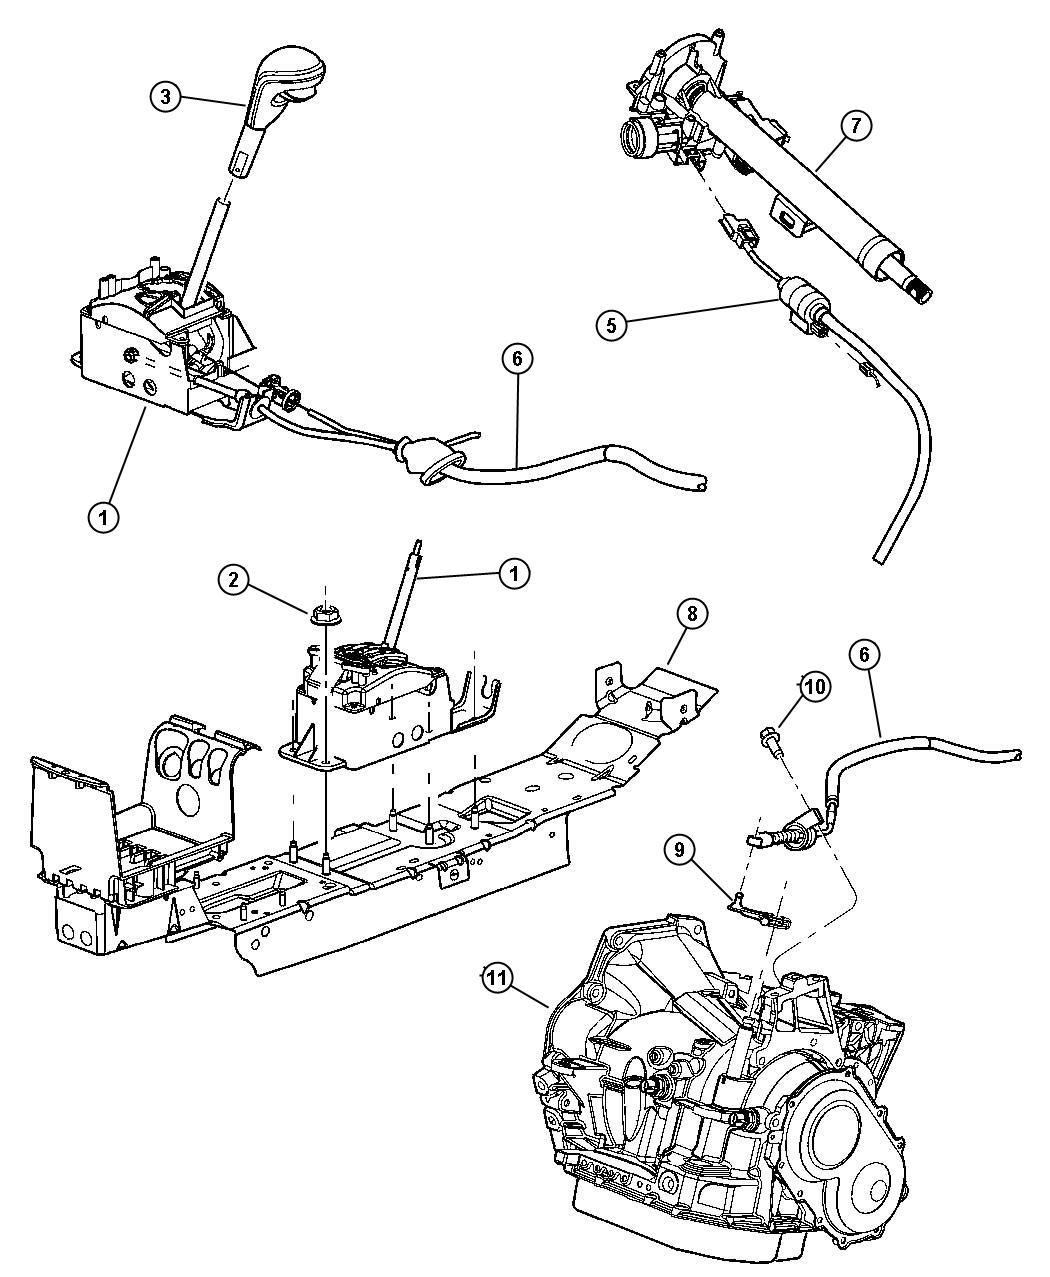 service manual  changeing gear shift assembly 2003 jeep grand cherokee